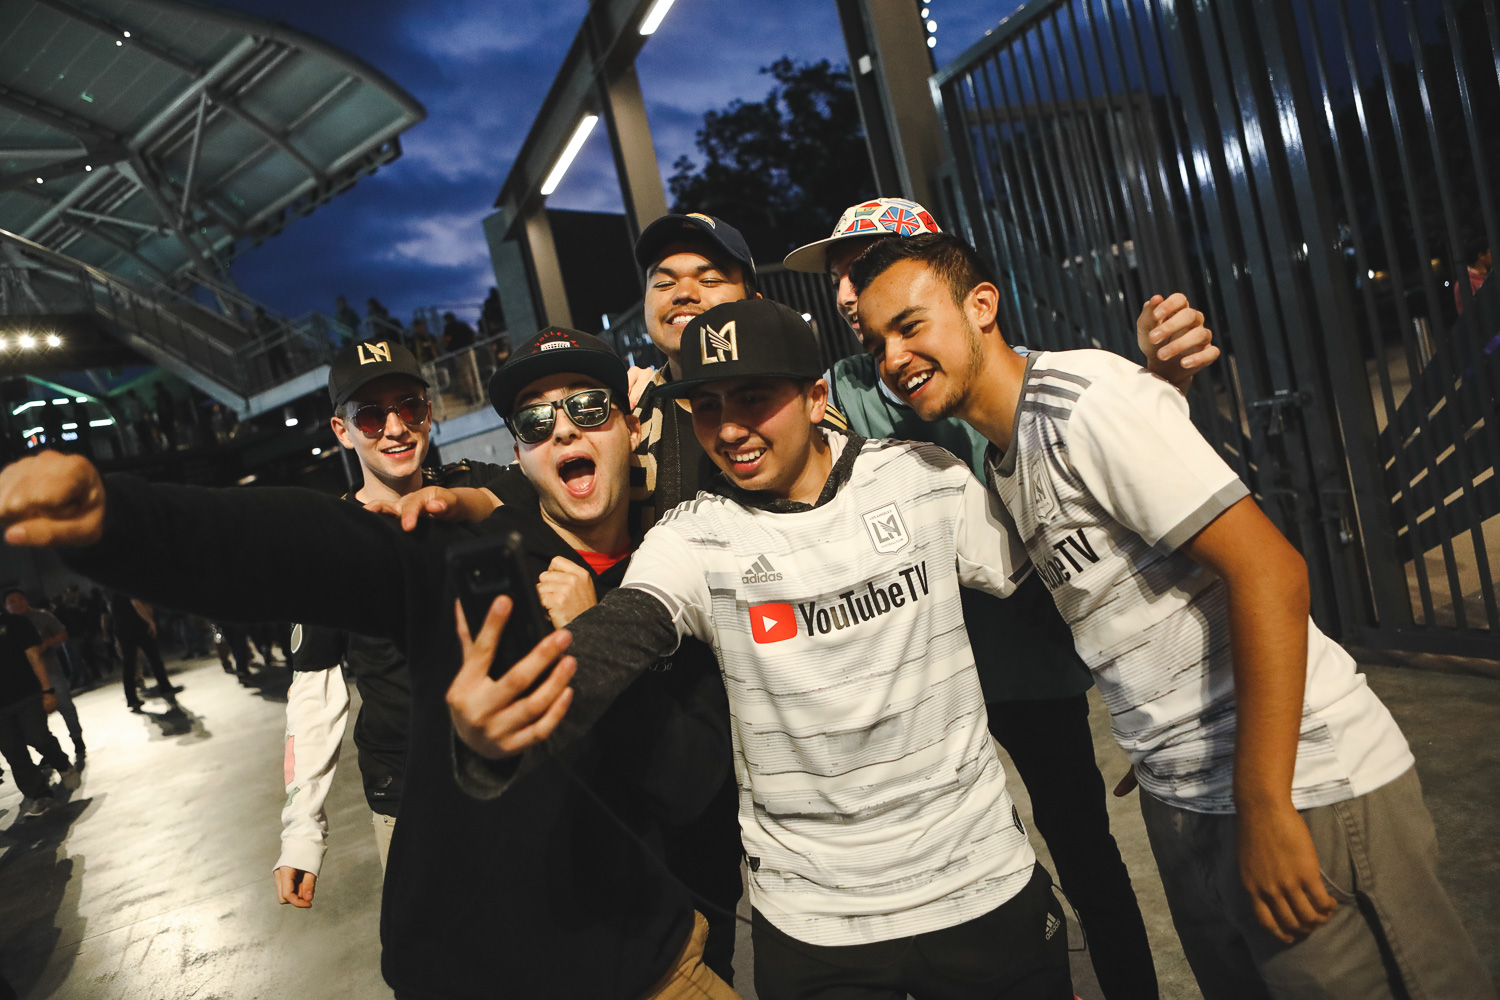 El Traffico is coming. And LAFC's young influencers are all over it.